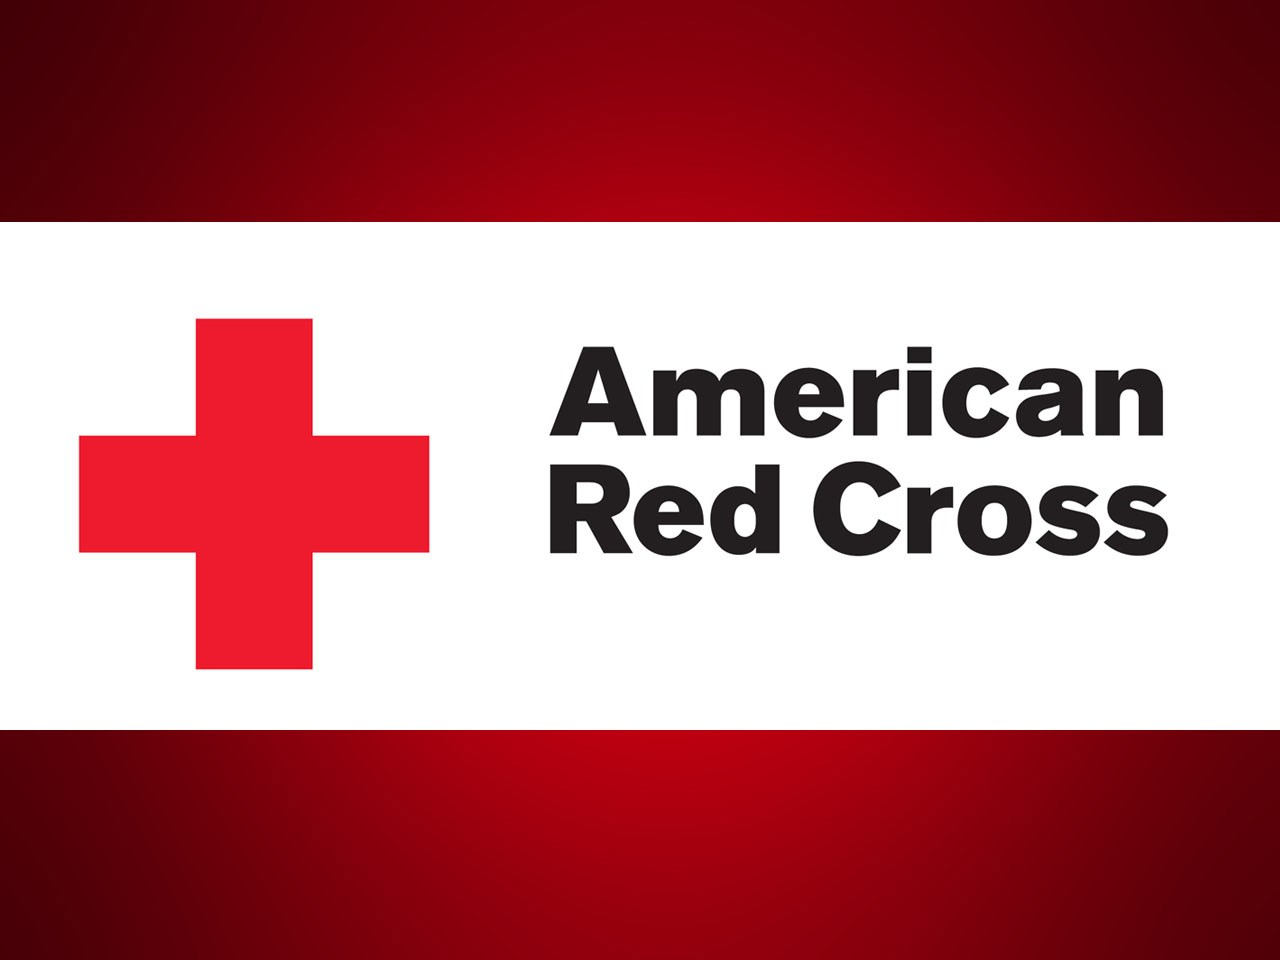 American Red Cross_1457388533298.jpg